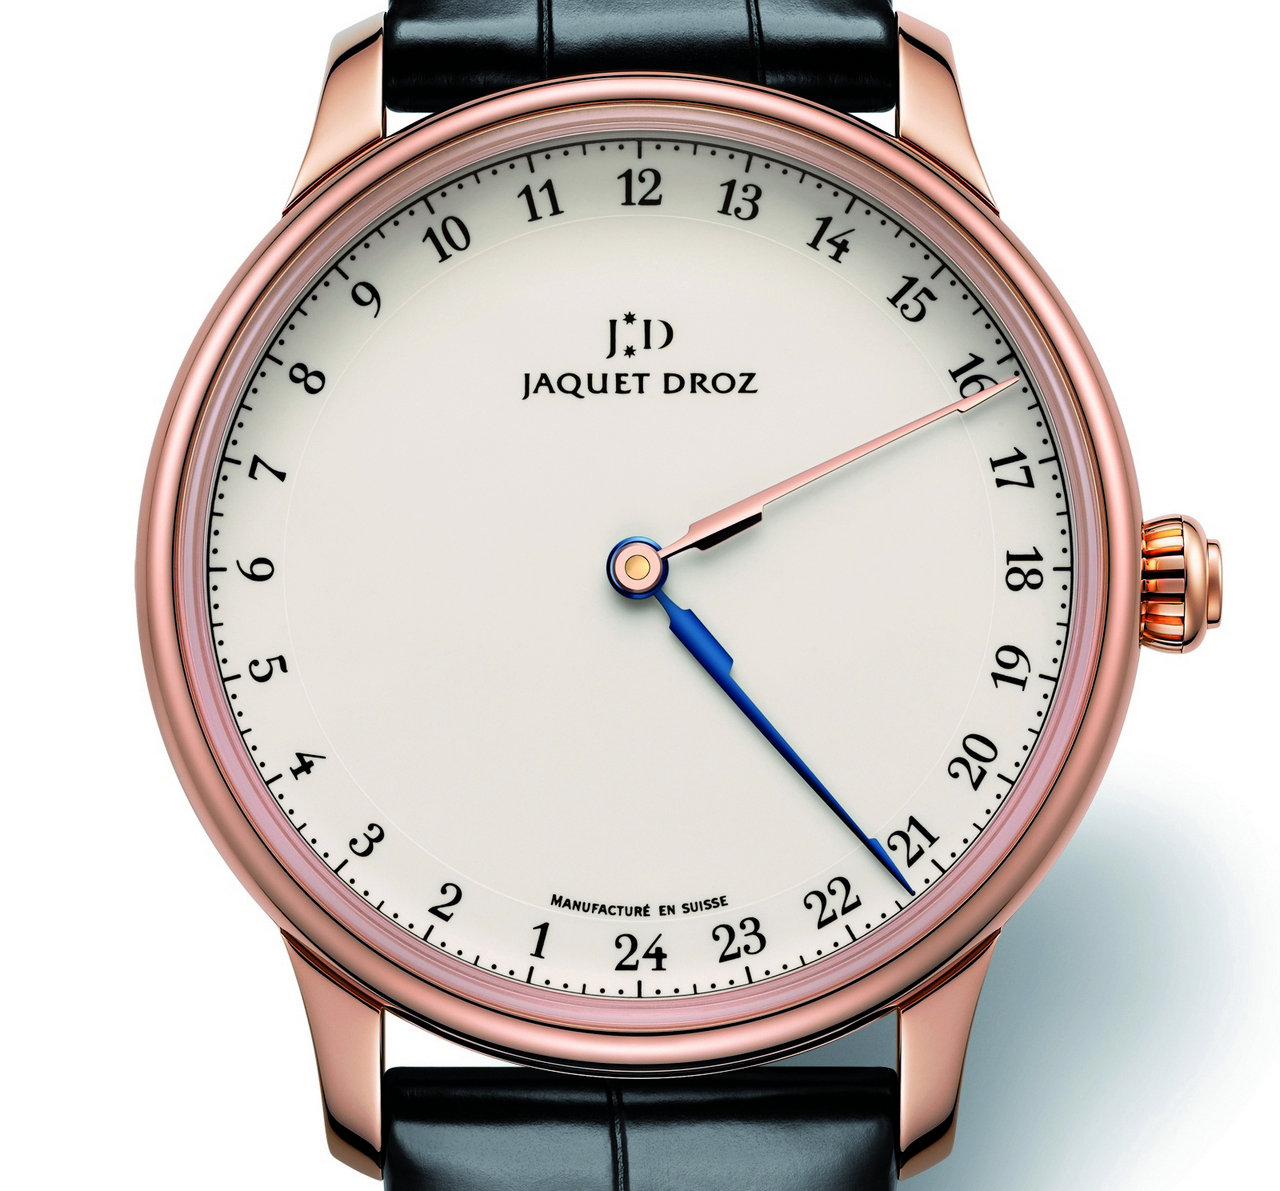 baselworld-2013-jaquet-droz-grande-heure-gmt_0-100_3